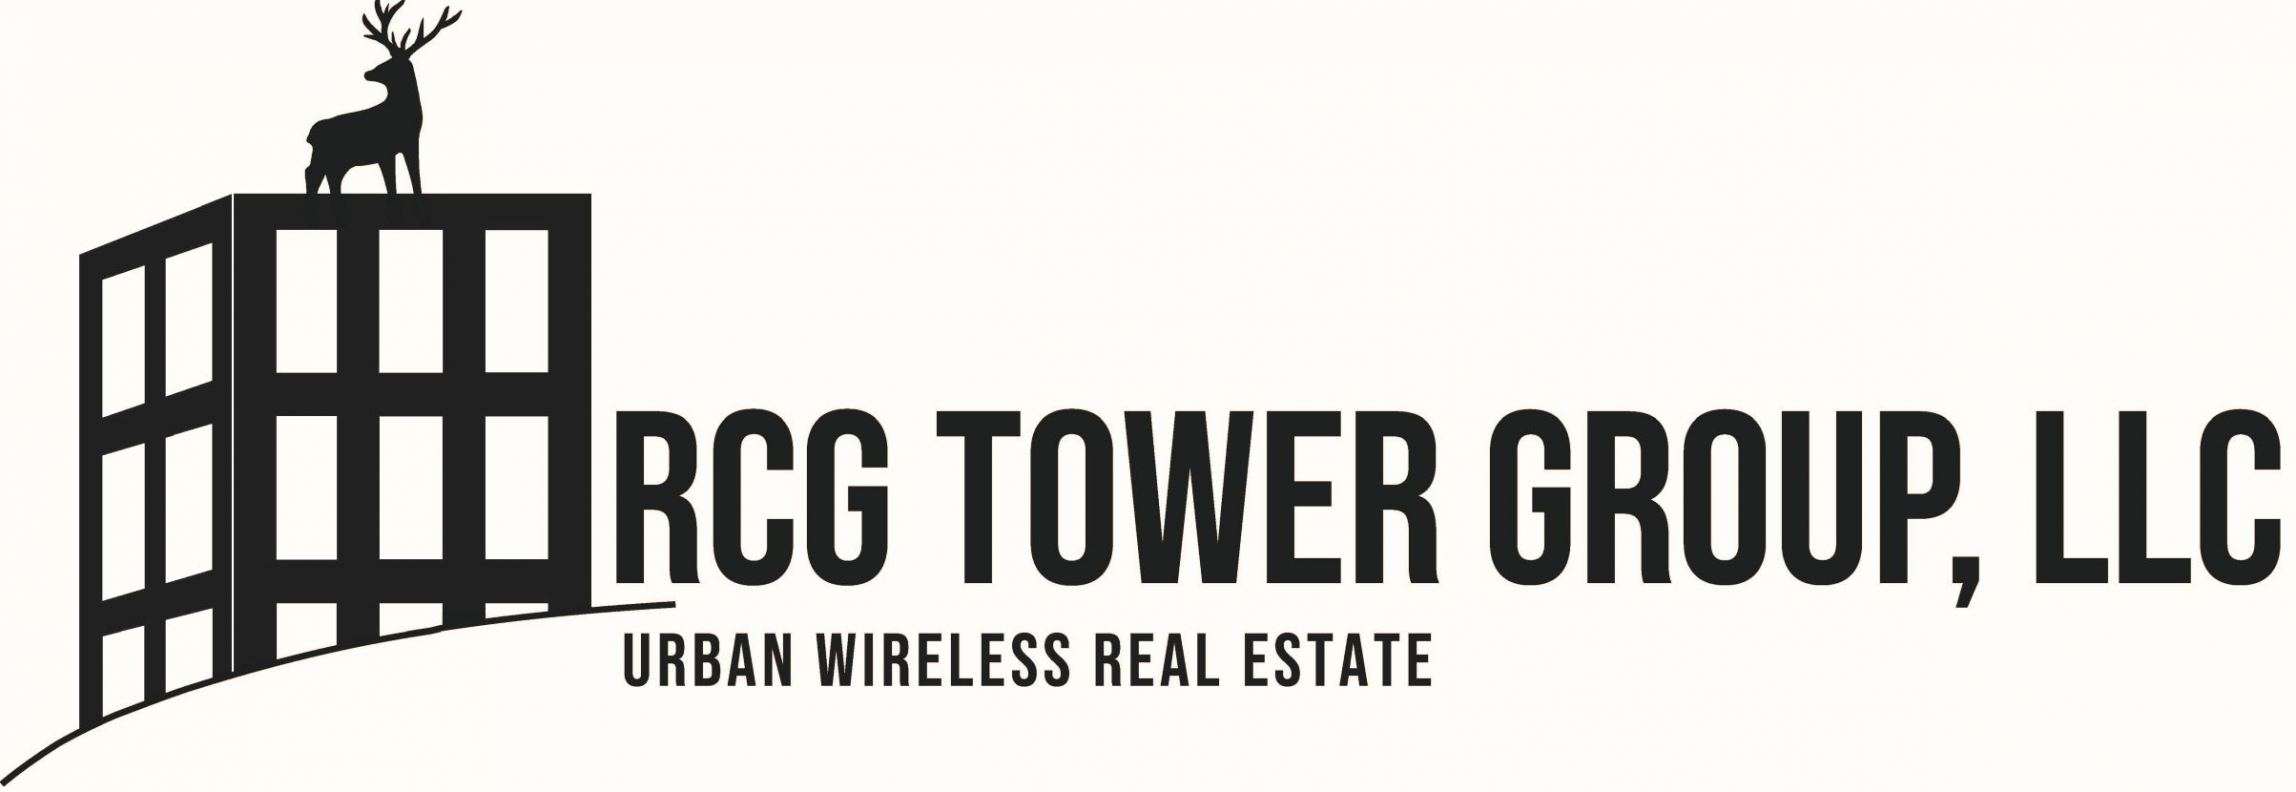 RCG Tower Group, LLC